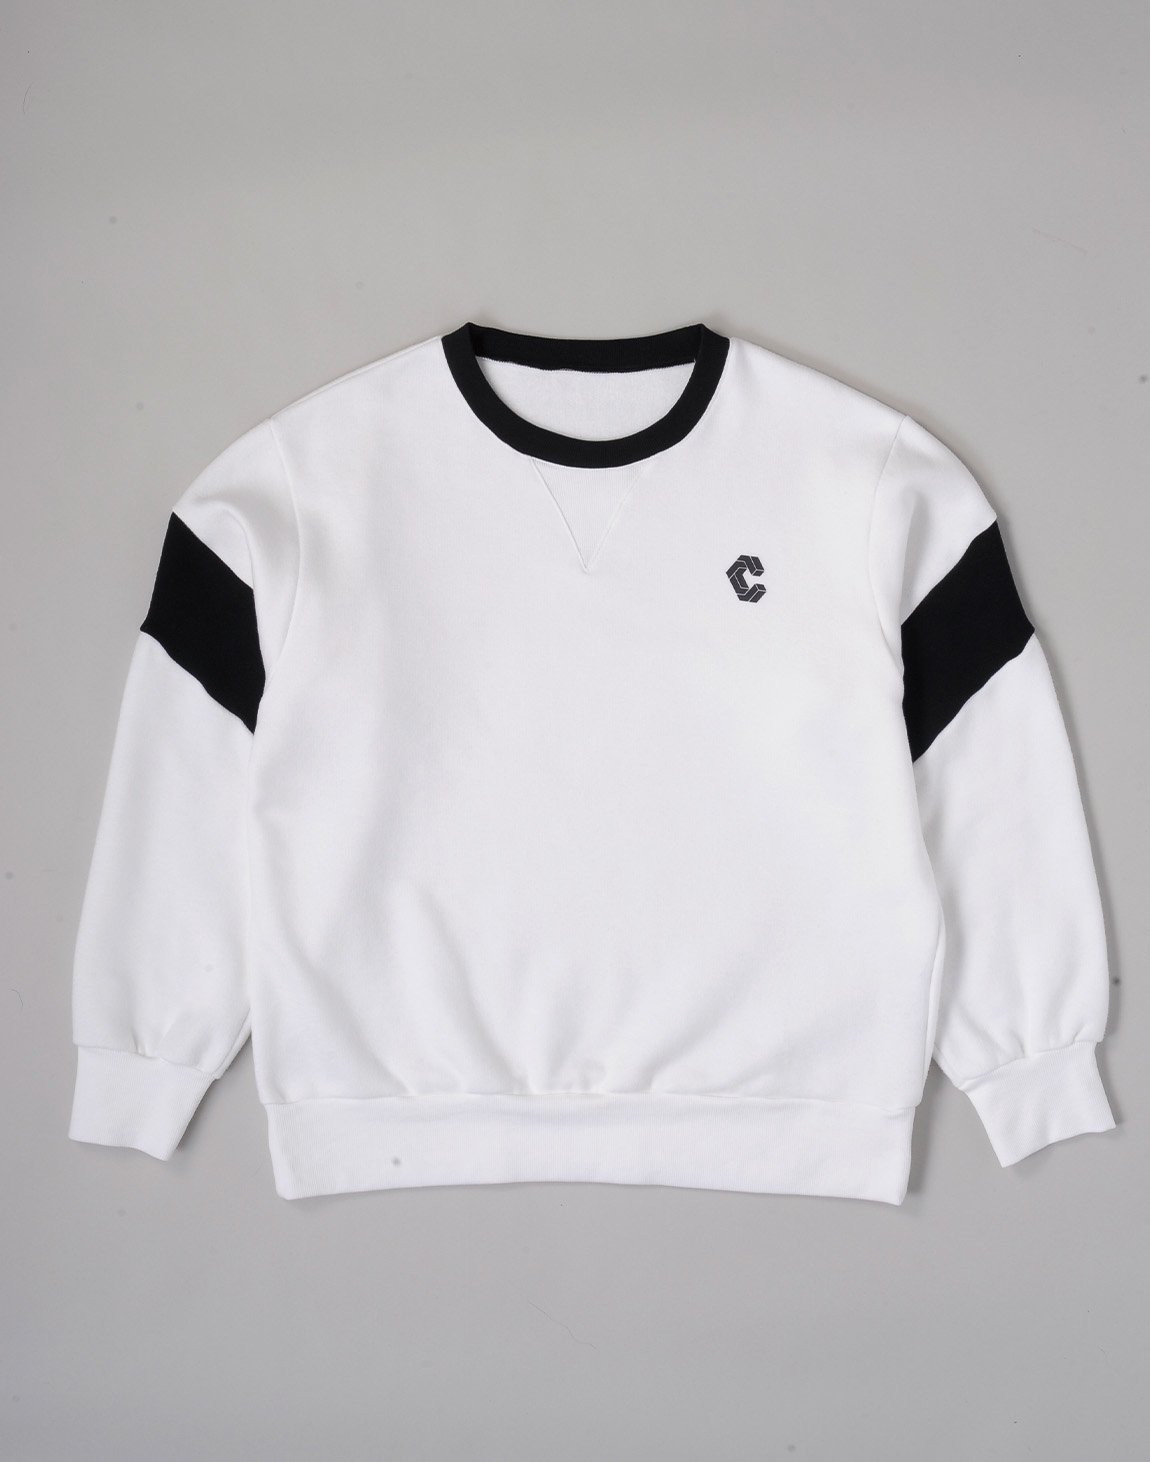 <img class='new_mark_img1' src='https://img.shop-pro.jp/img/new/icons1.gif' style='border:none;display:inline;margin:0px;padding:0px;width:auto;' />CRONOS LOGO SOFT FLEECE SWEATSHIRT【WHITE】